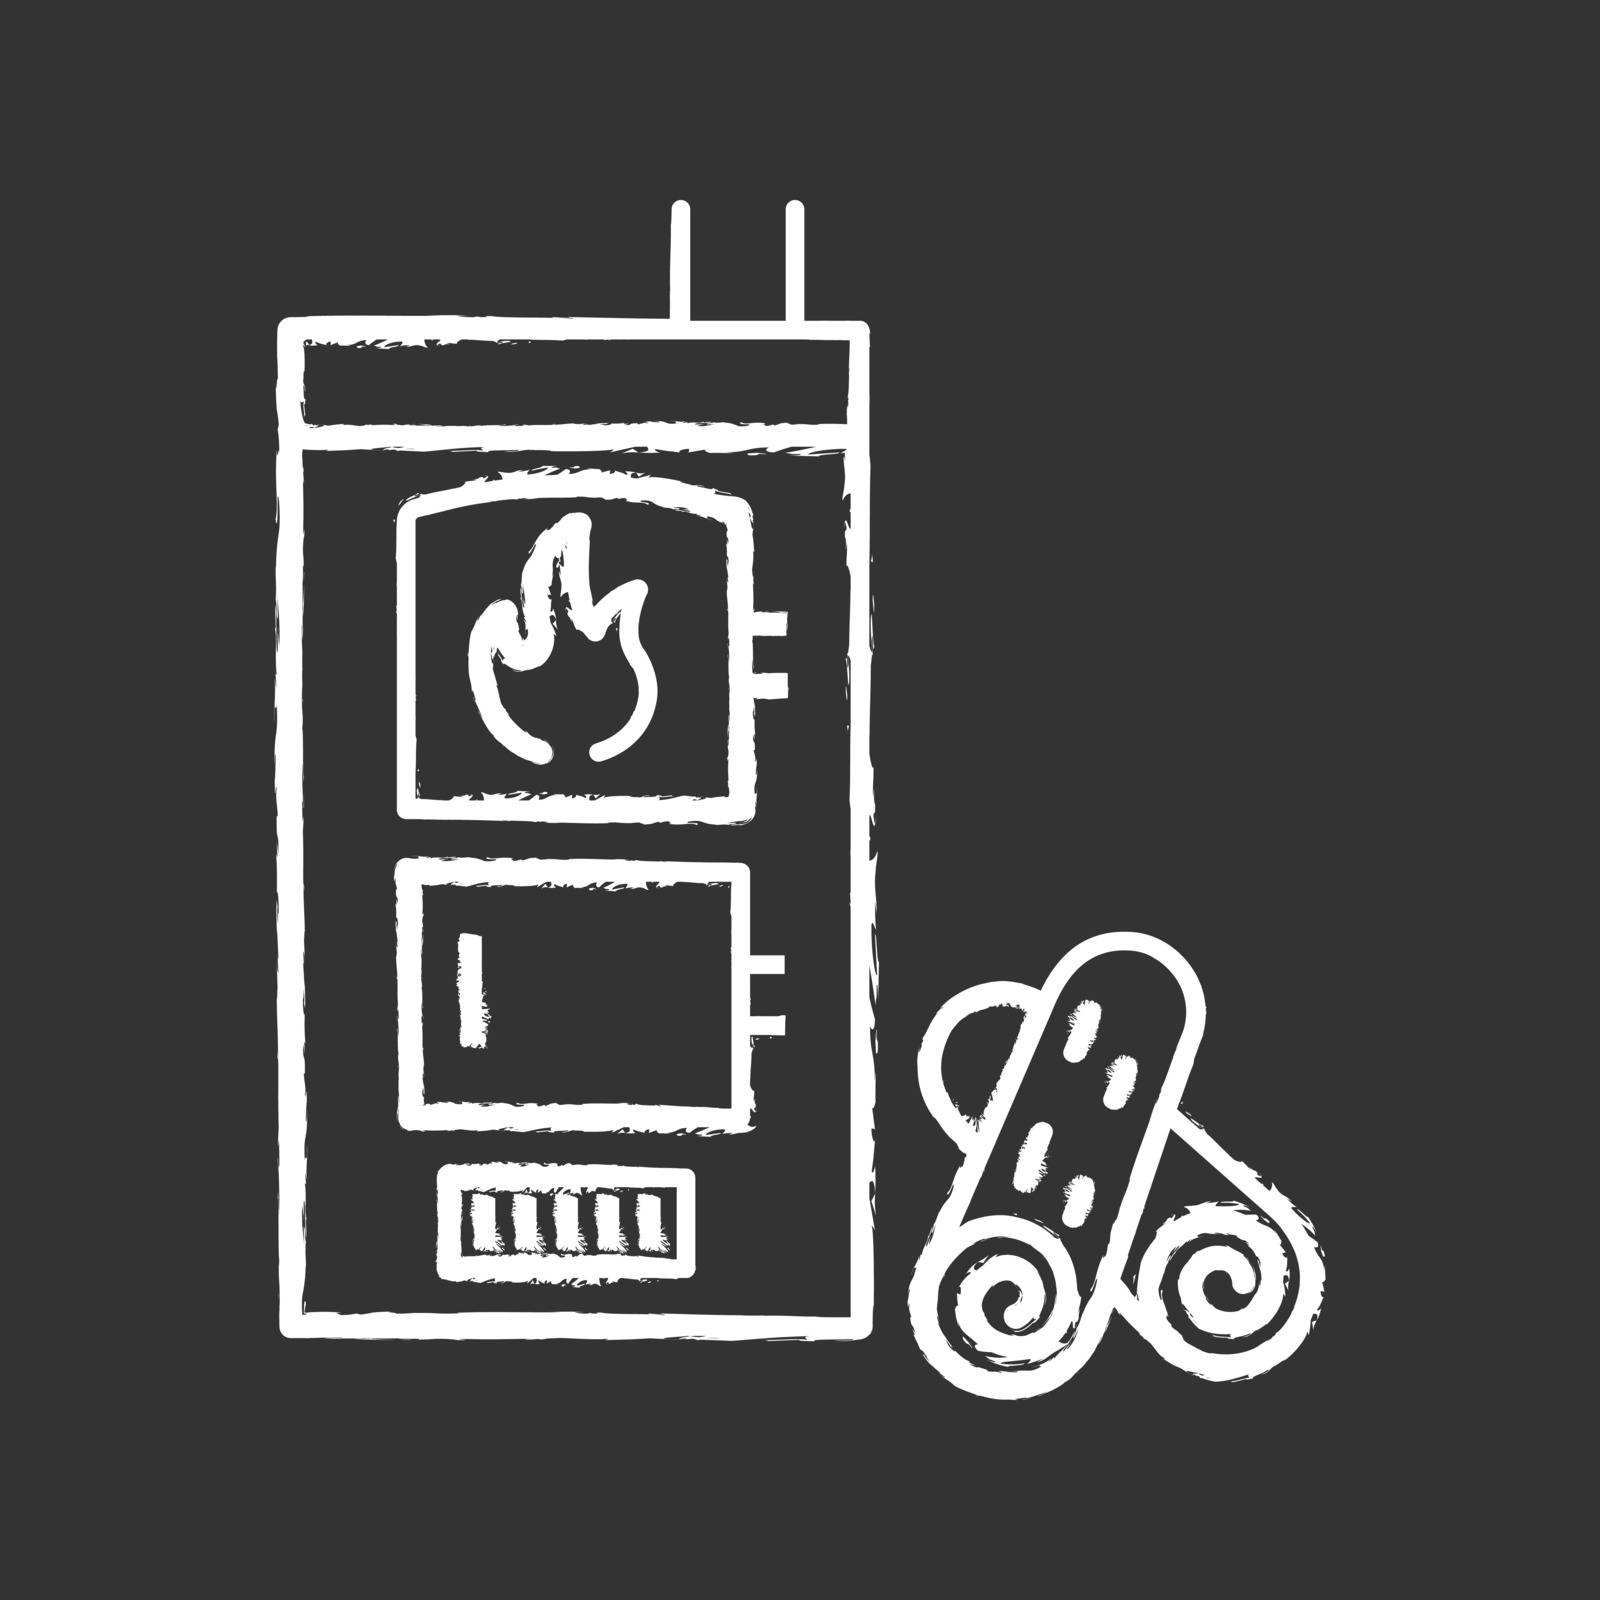 Solid fuel boiler chalk icon. House central heater. Firewood boiler with two chambers. Heating system. Isolated vector chalkboard illustration